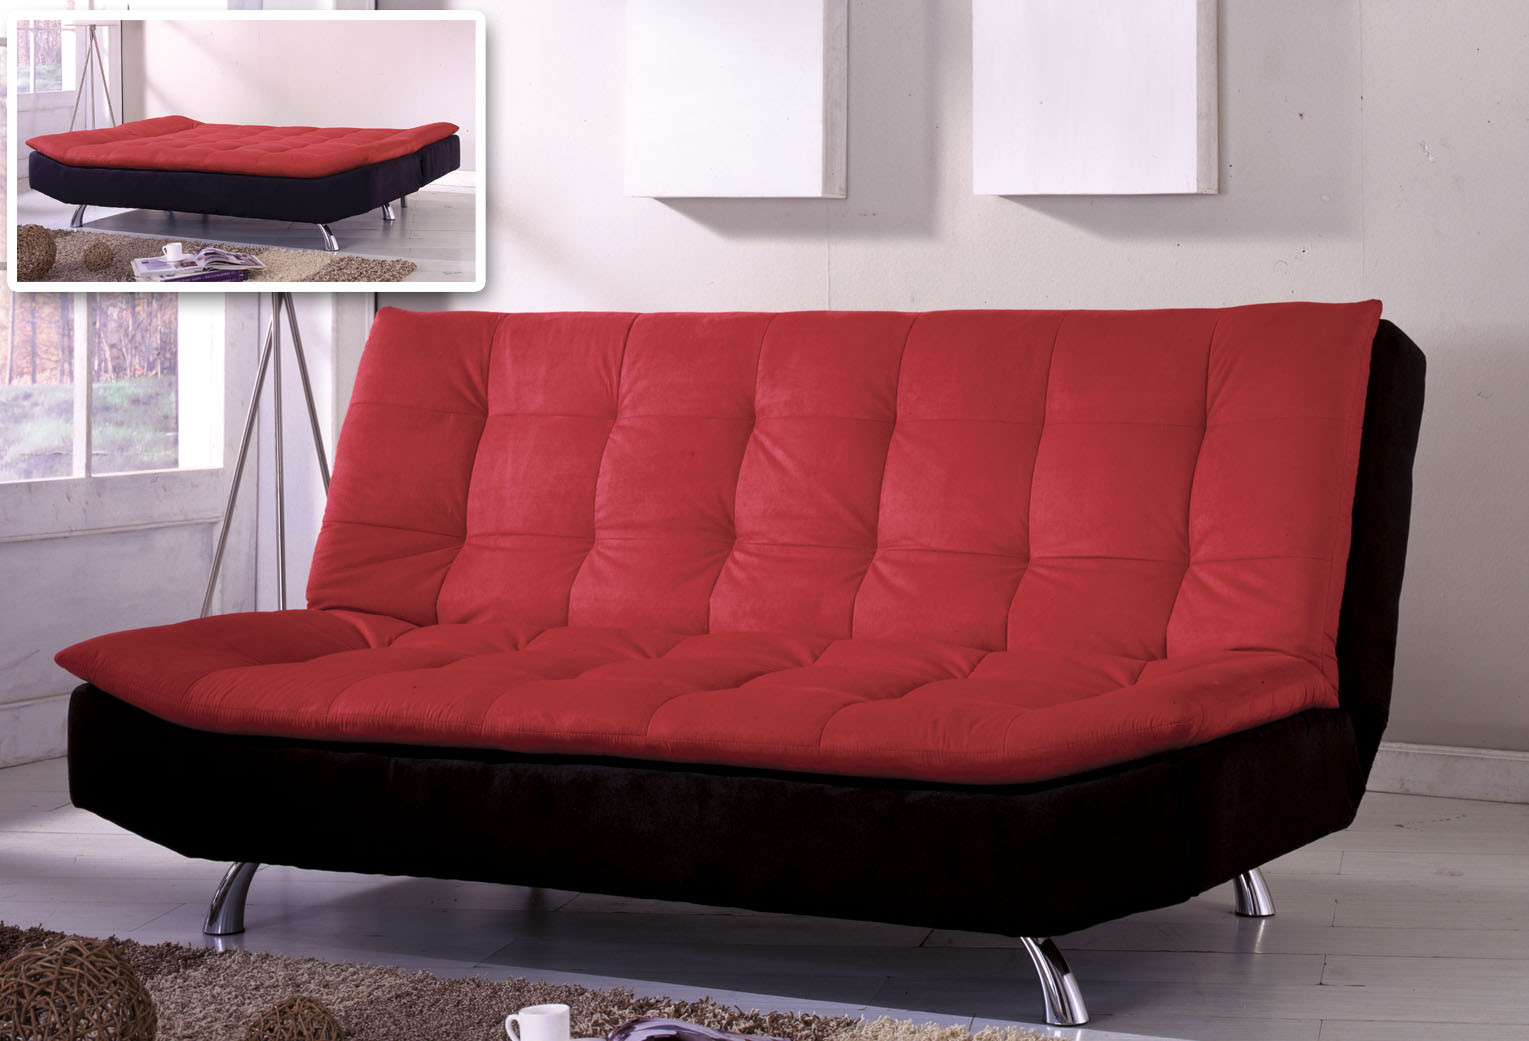 Futon sofa bed sophisticated furniture inoutinterior for Furniture sofa bed